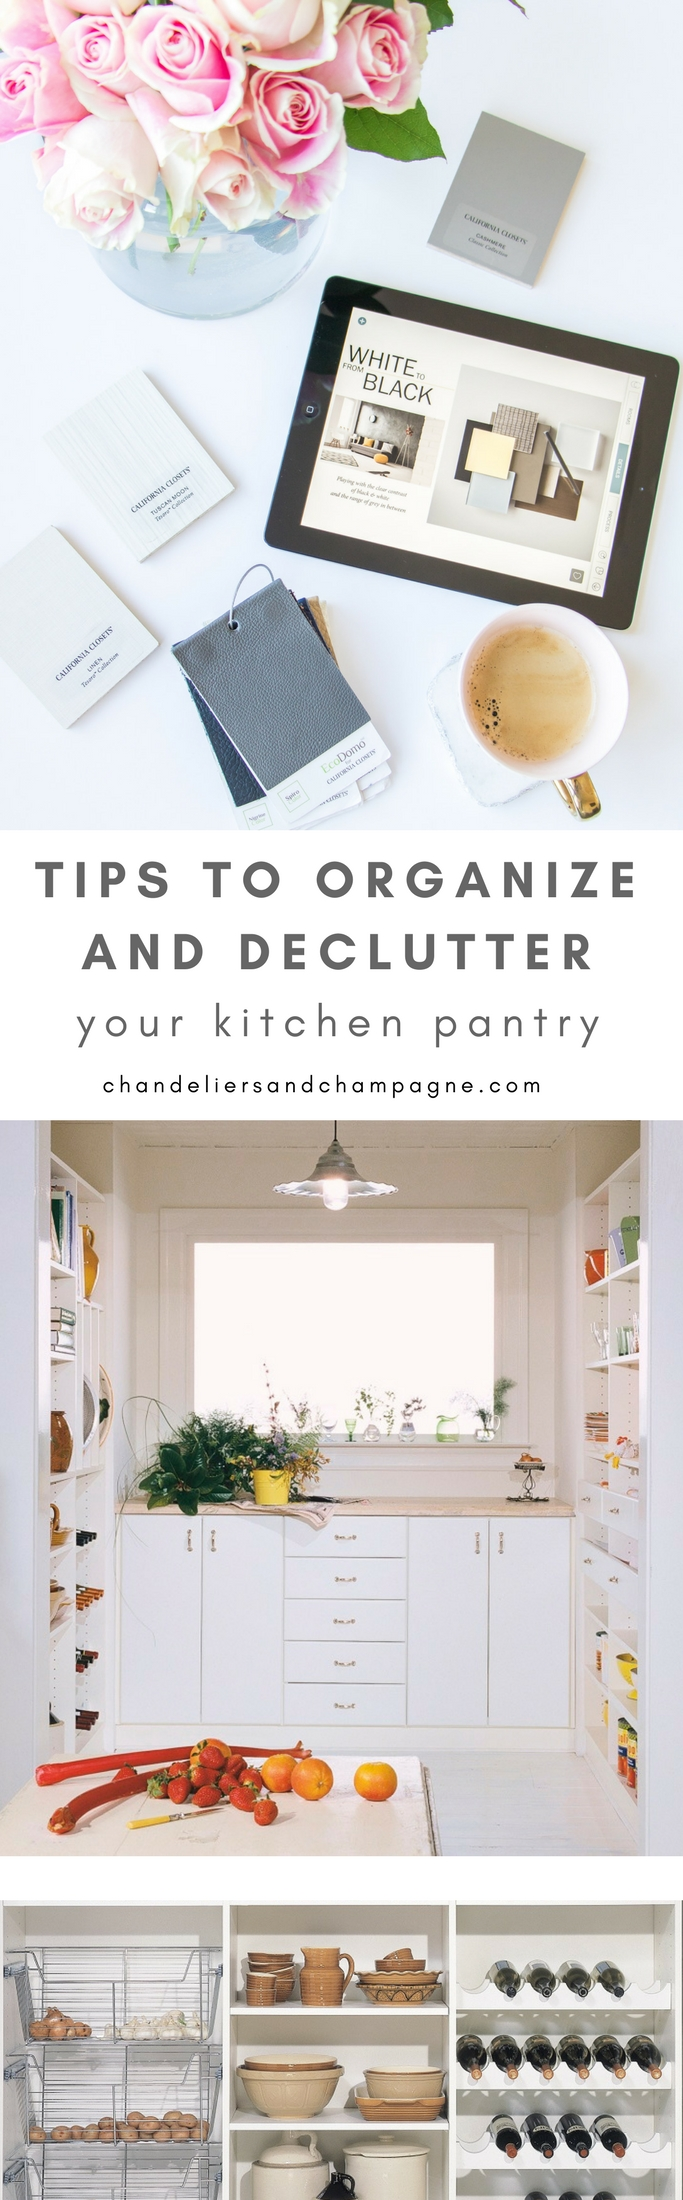 Tips to Declutter and Organize Your Walk-In Pantry • 3 Easy Steps to ...